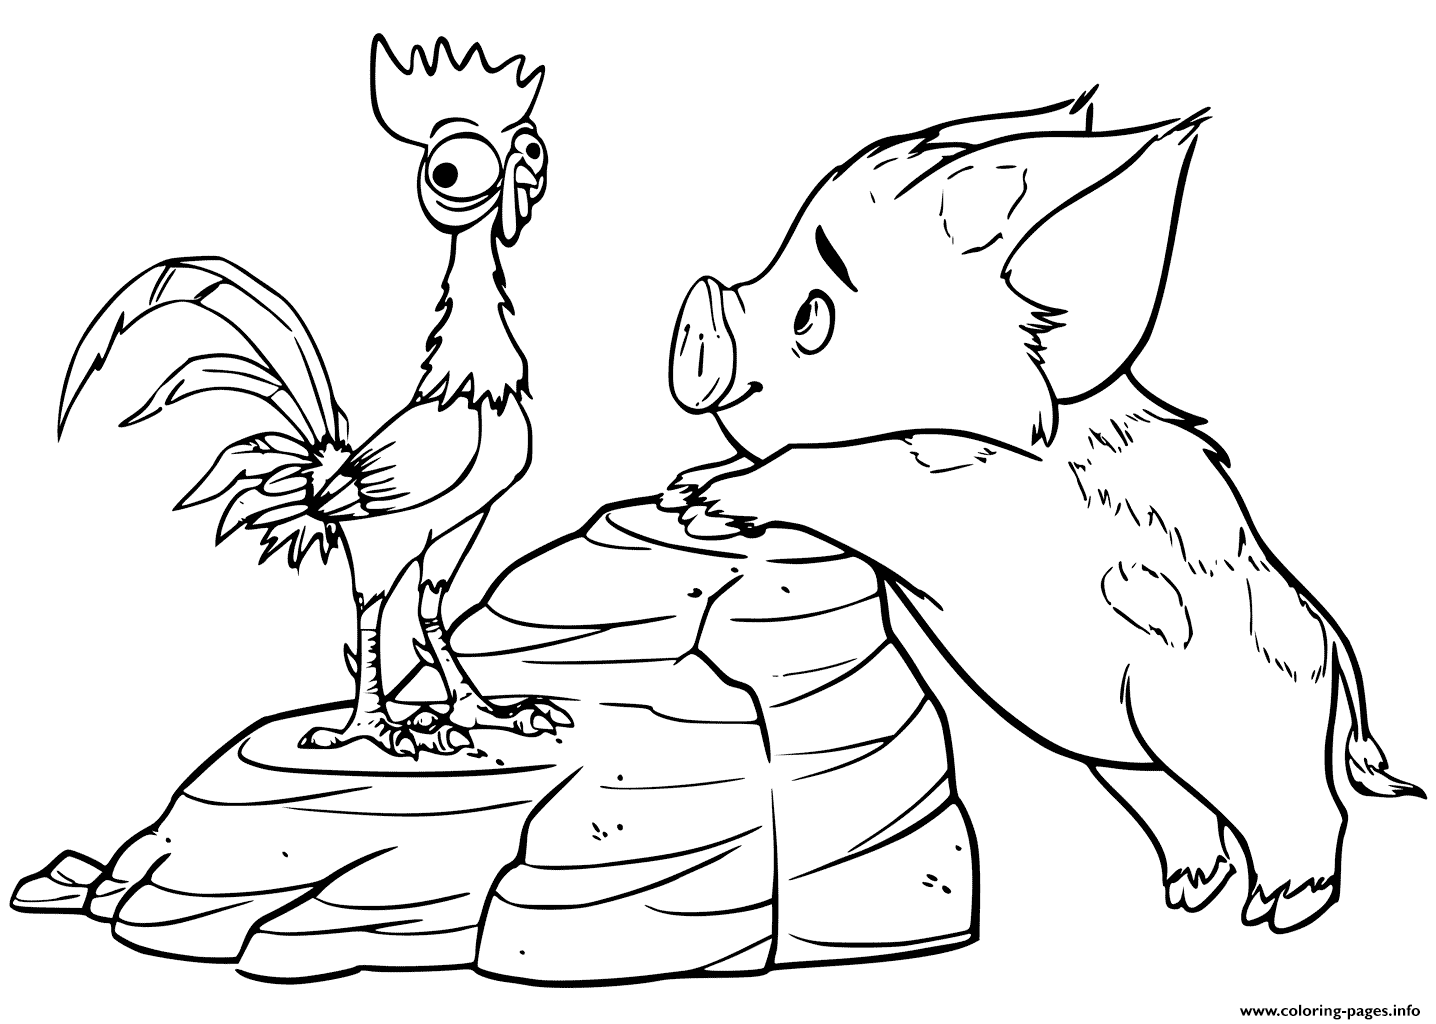 1436x1024 Pua Moana Coloring Pages Baby Moana And Maui Coloring Pages